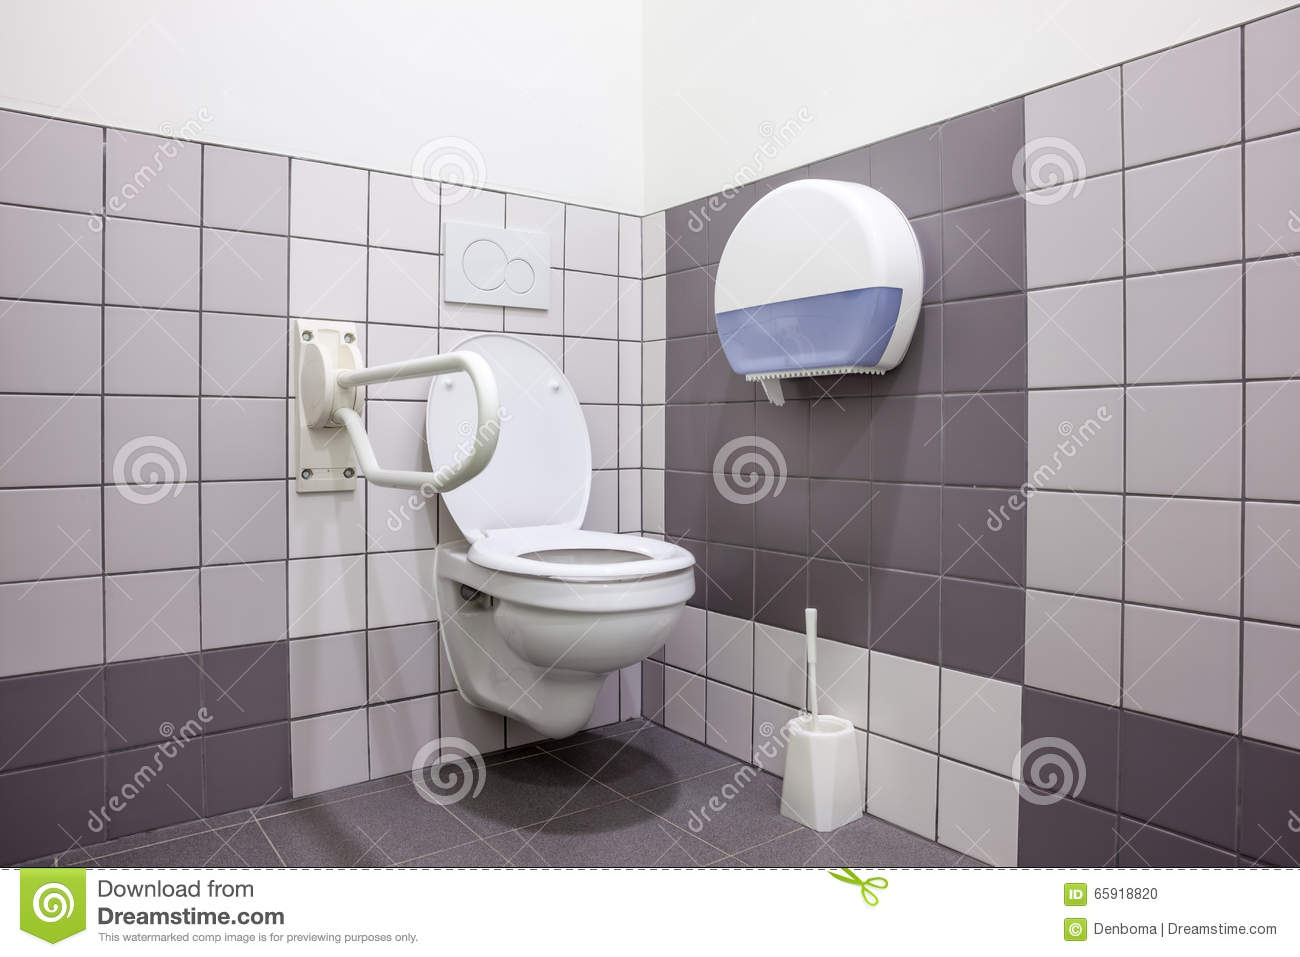 Disabled toilet stock photo. Image of handrail, restroom - 65918820